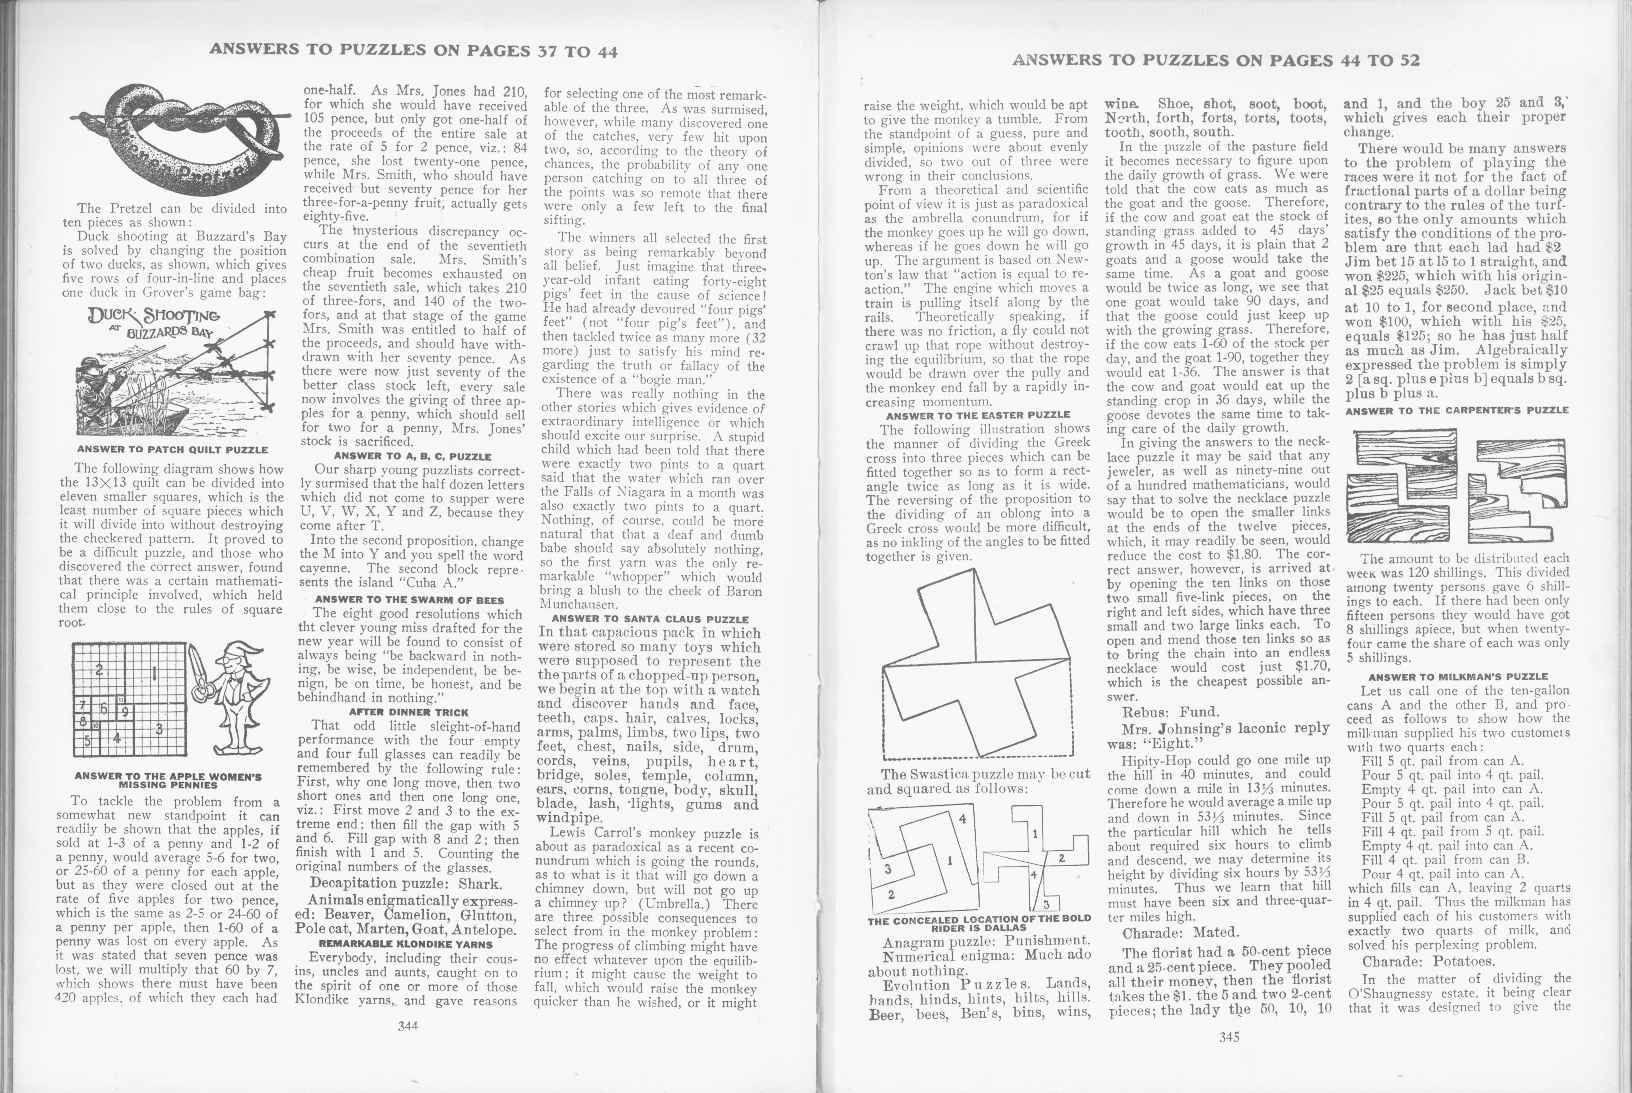 Sam Loyd - Cyclopedia of Puzzles - page 344-345